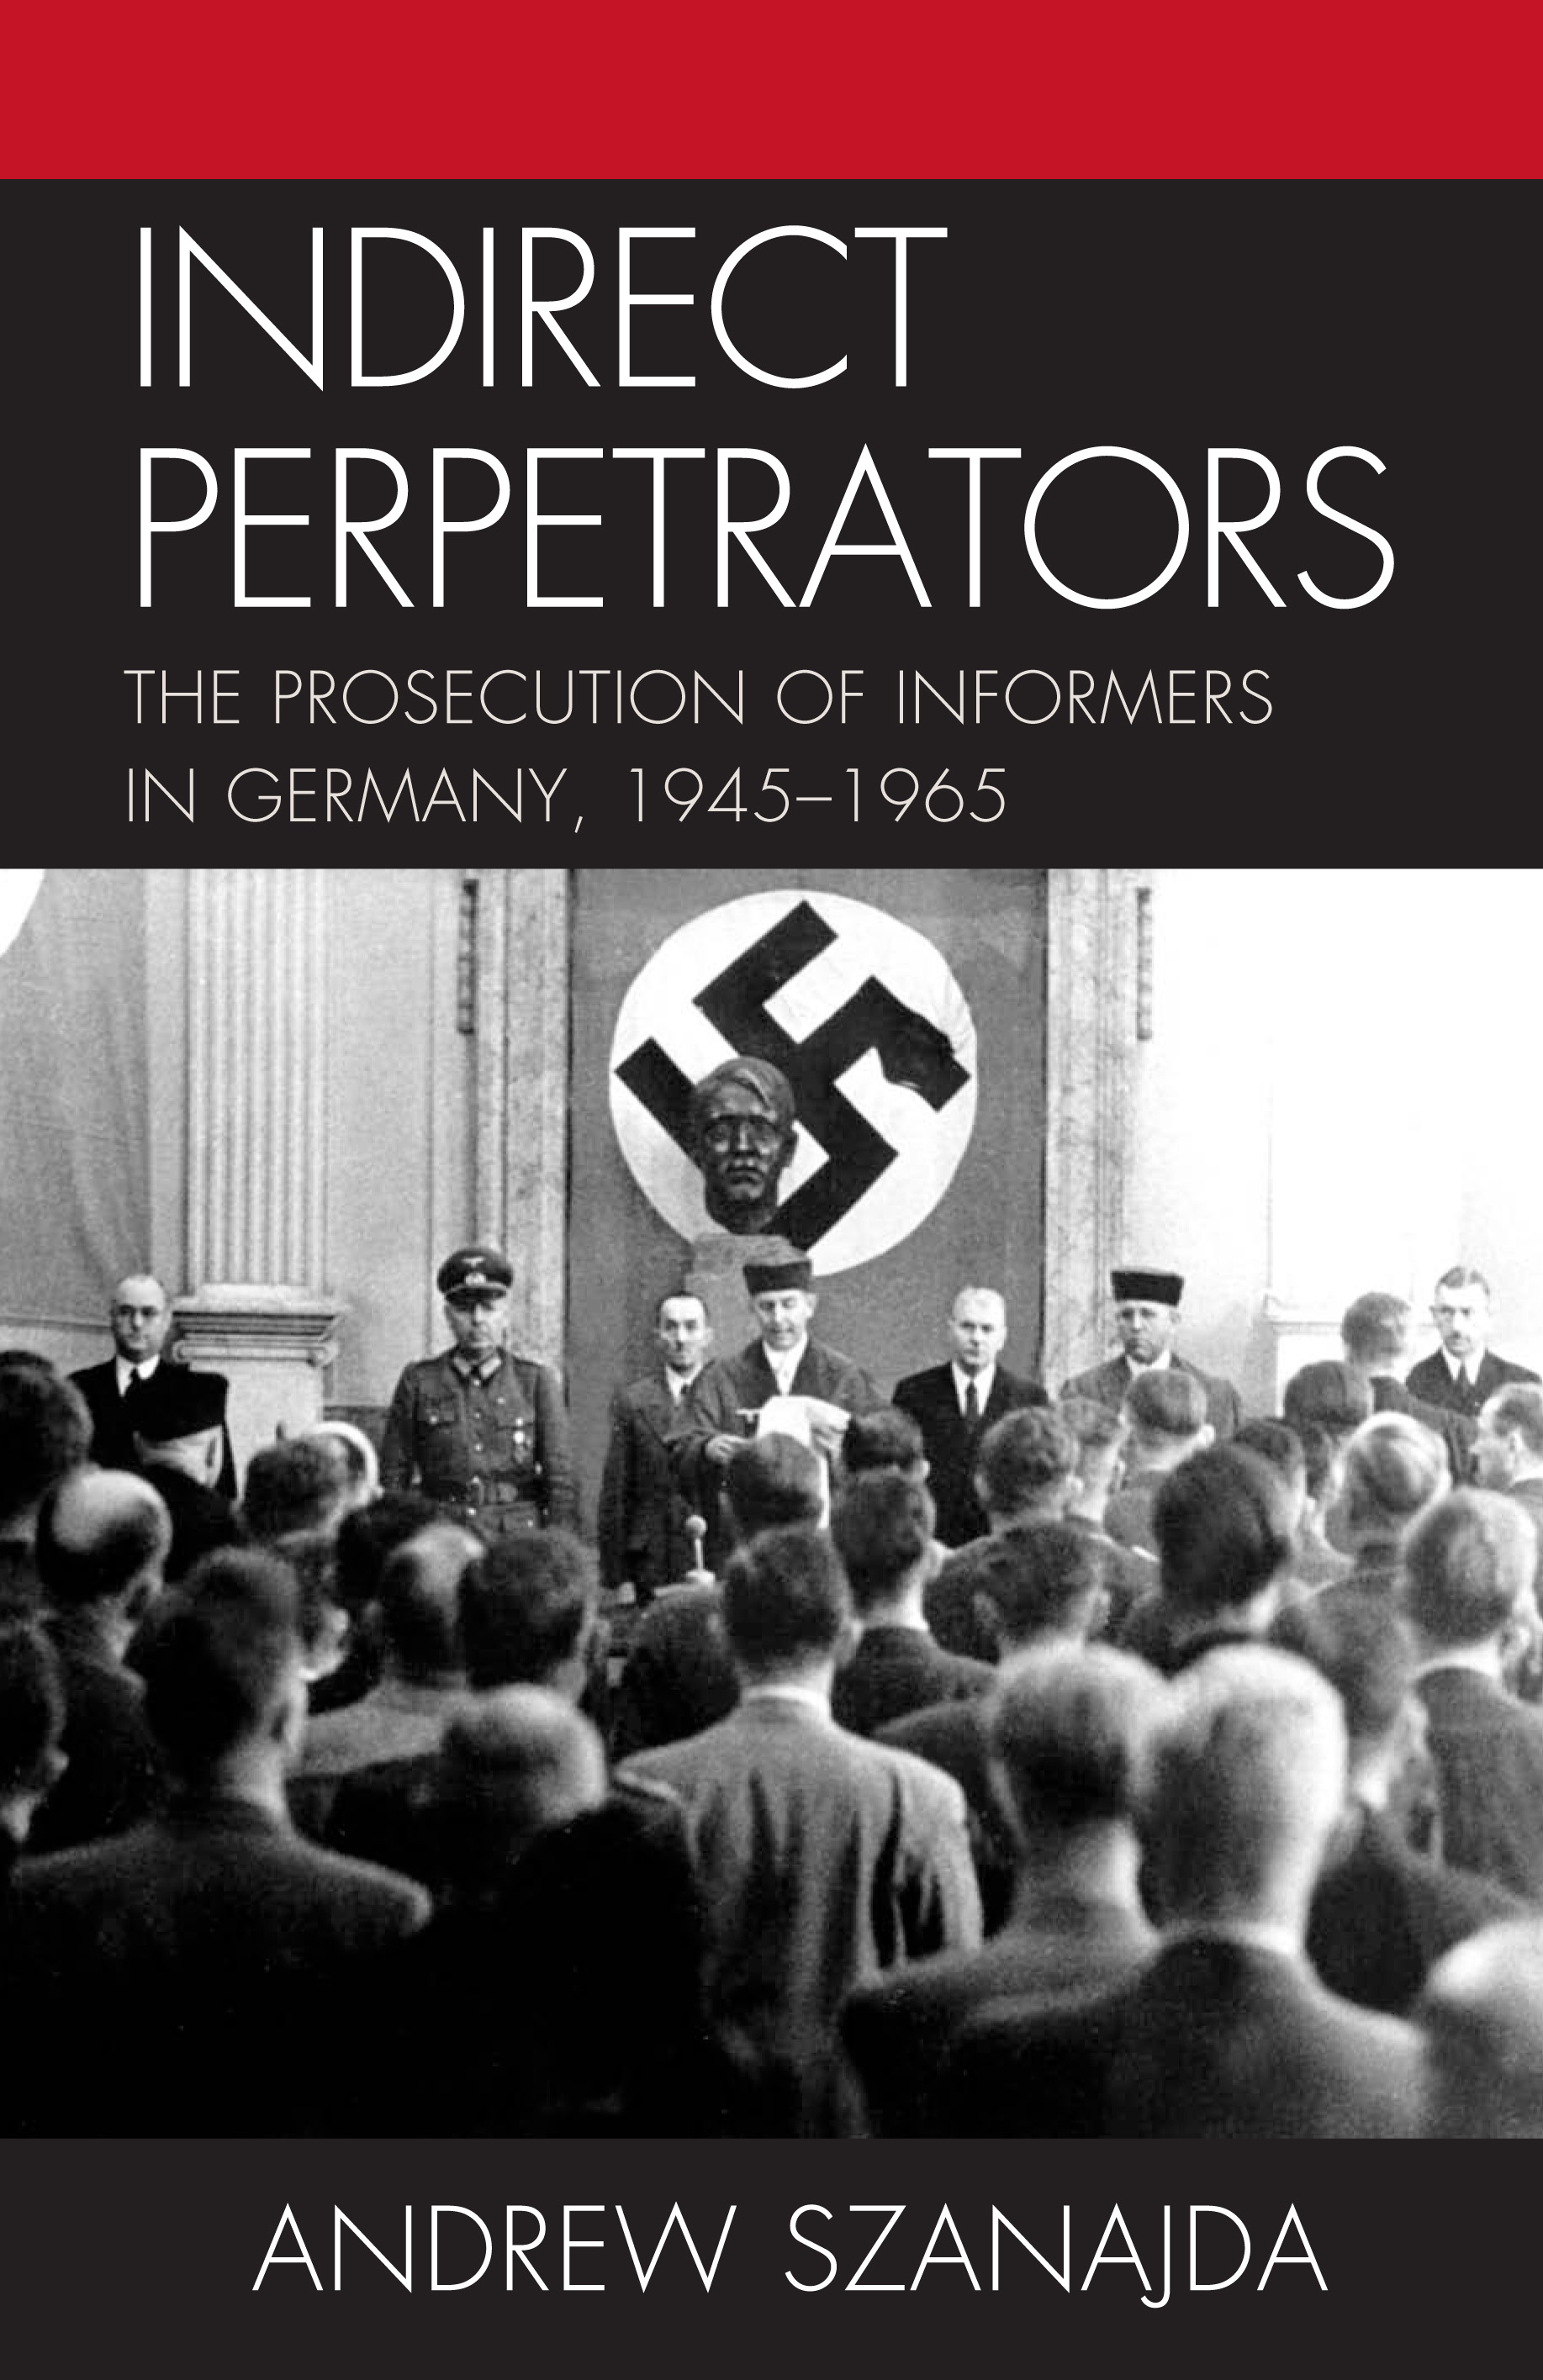 Indirect Perpetrators By: Andrew Szanajda